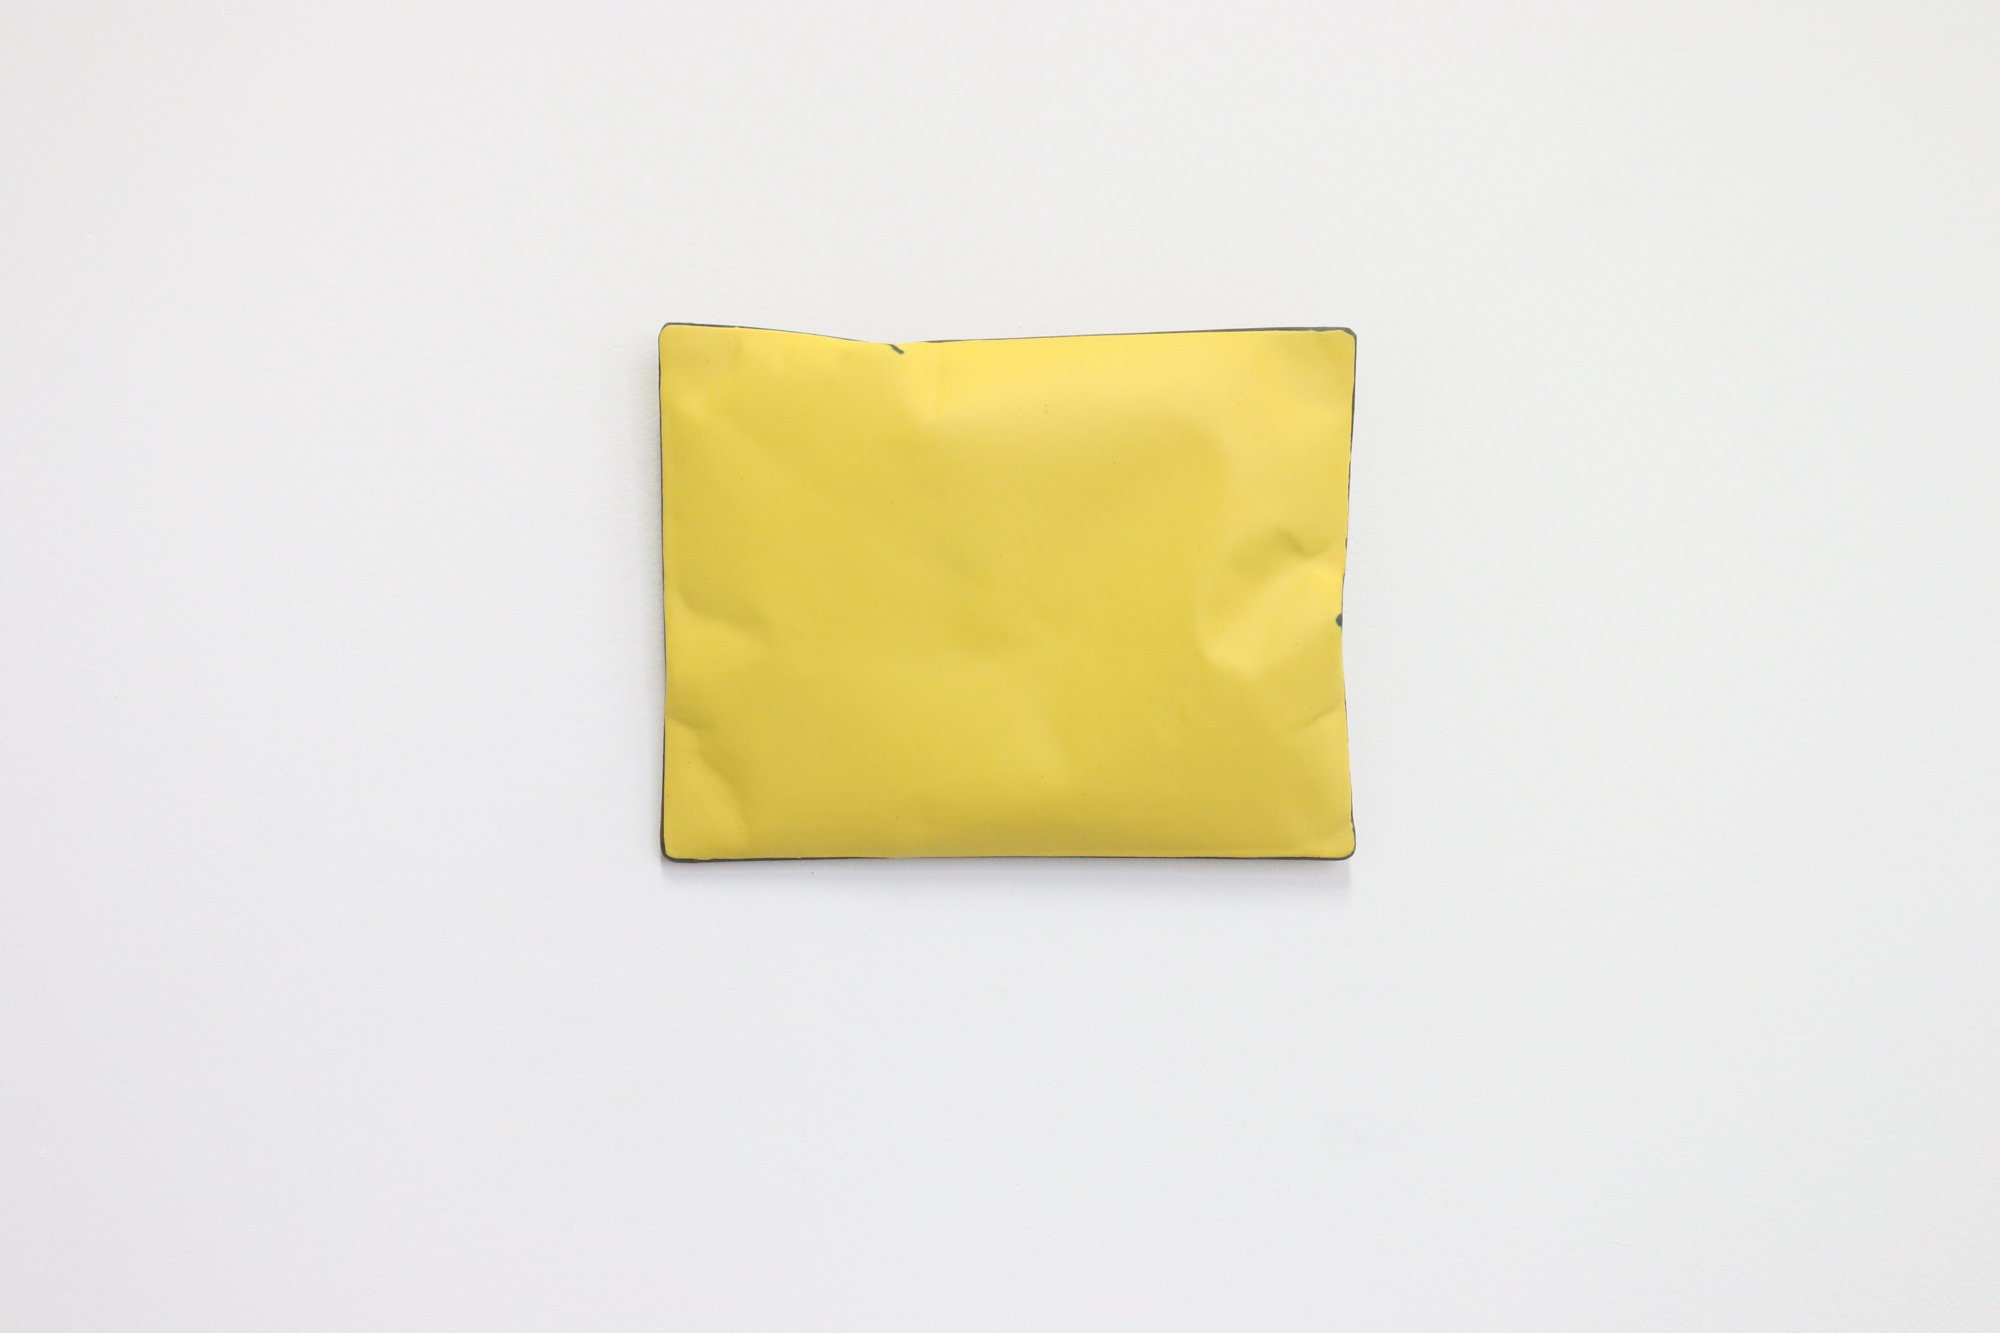 Johan De Wit, Untitled, 2019, Acrylic, Marble, Resin on Paper, 23x18x3.5 cm, Affinity Art.jpg